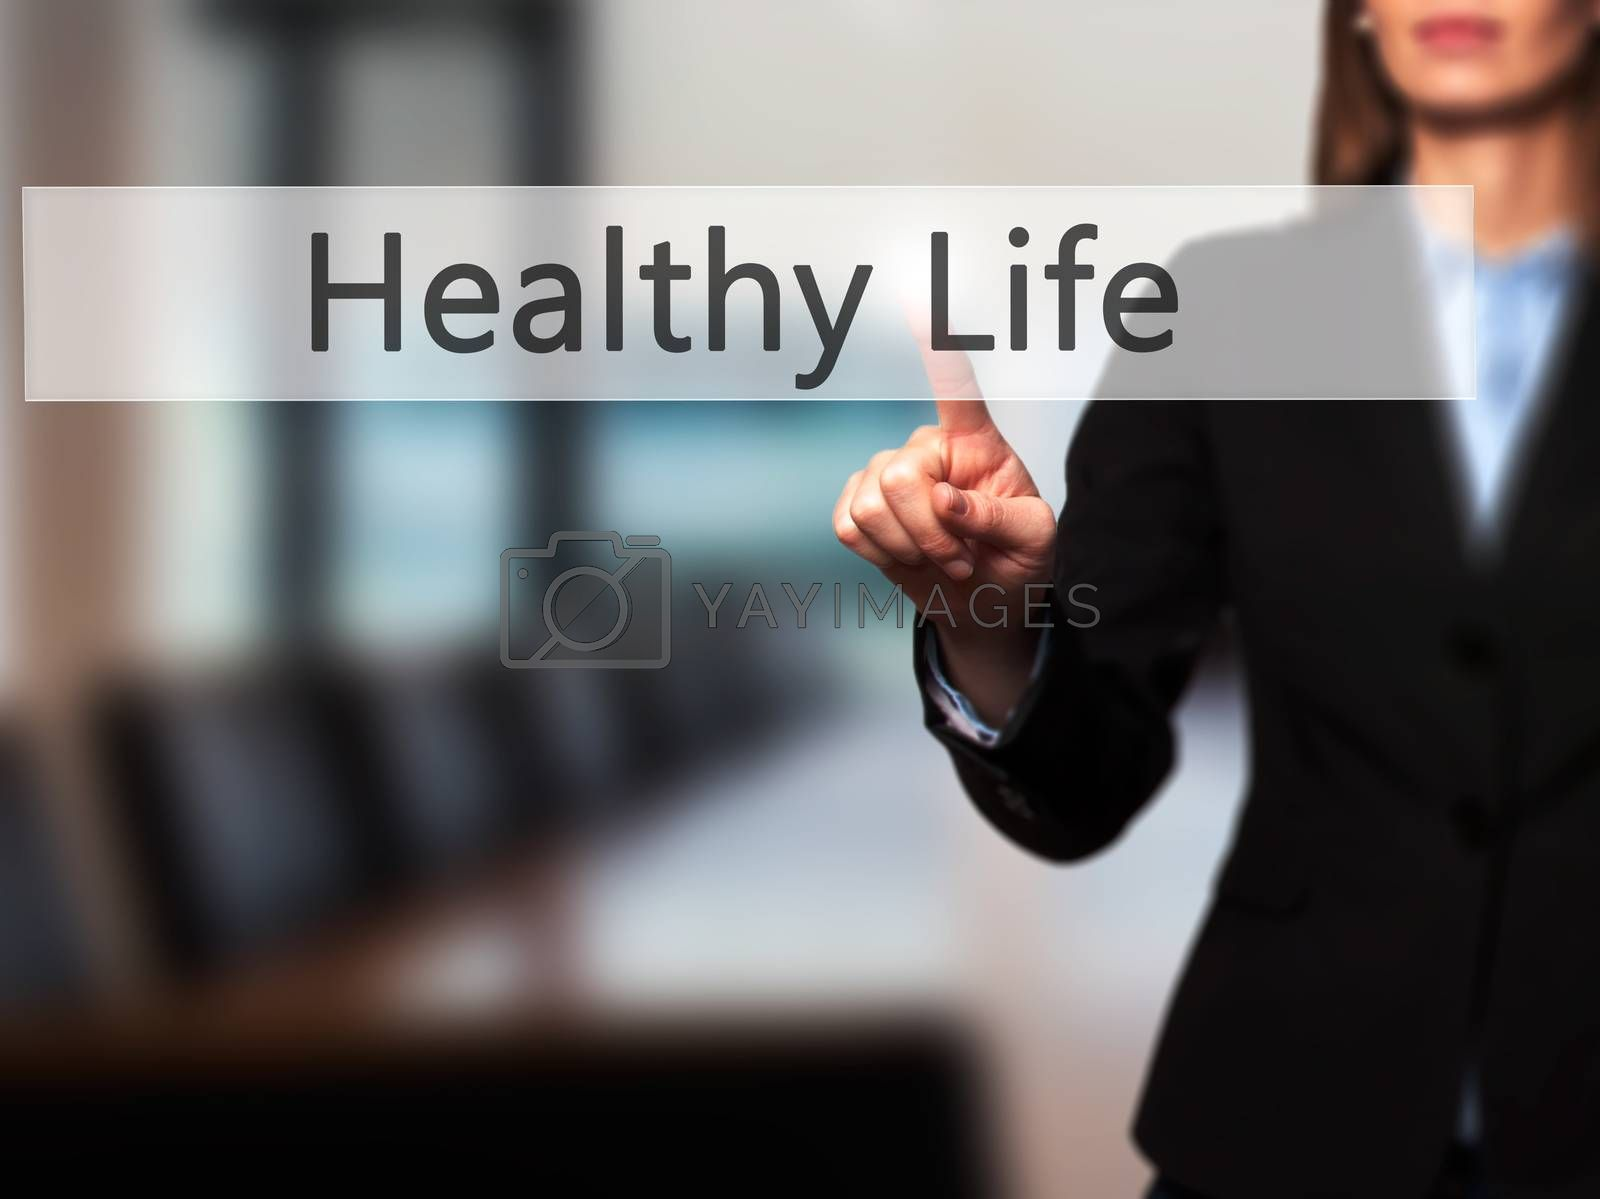 Healthy Life - Businesswoman hand pressing button on touch screen interface. Business, technology, internet concept. Stock Photo